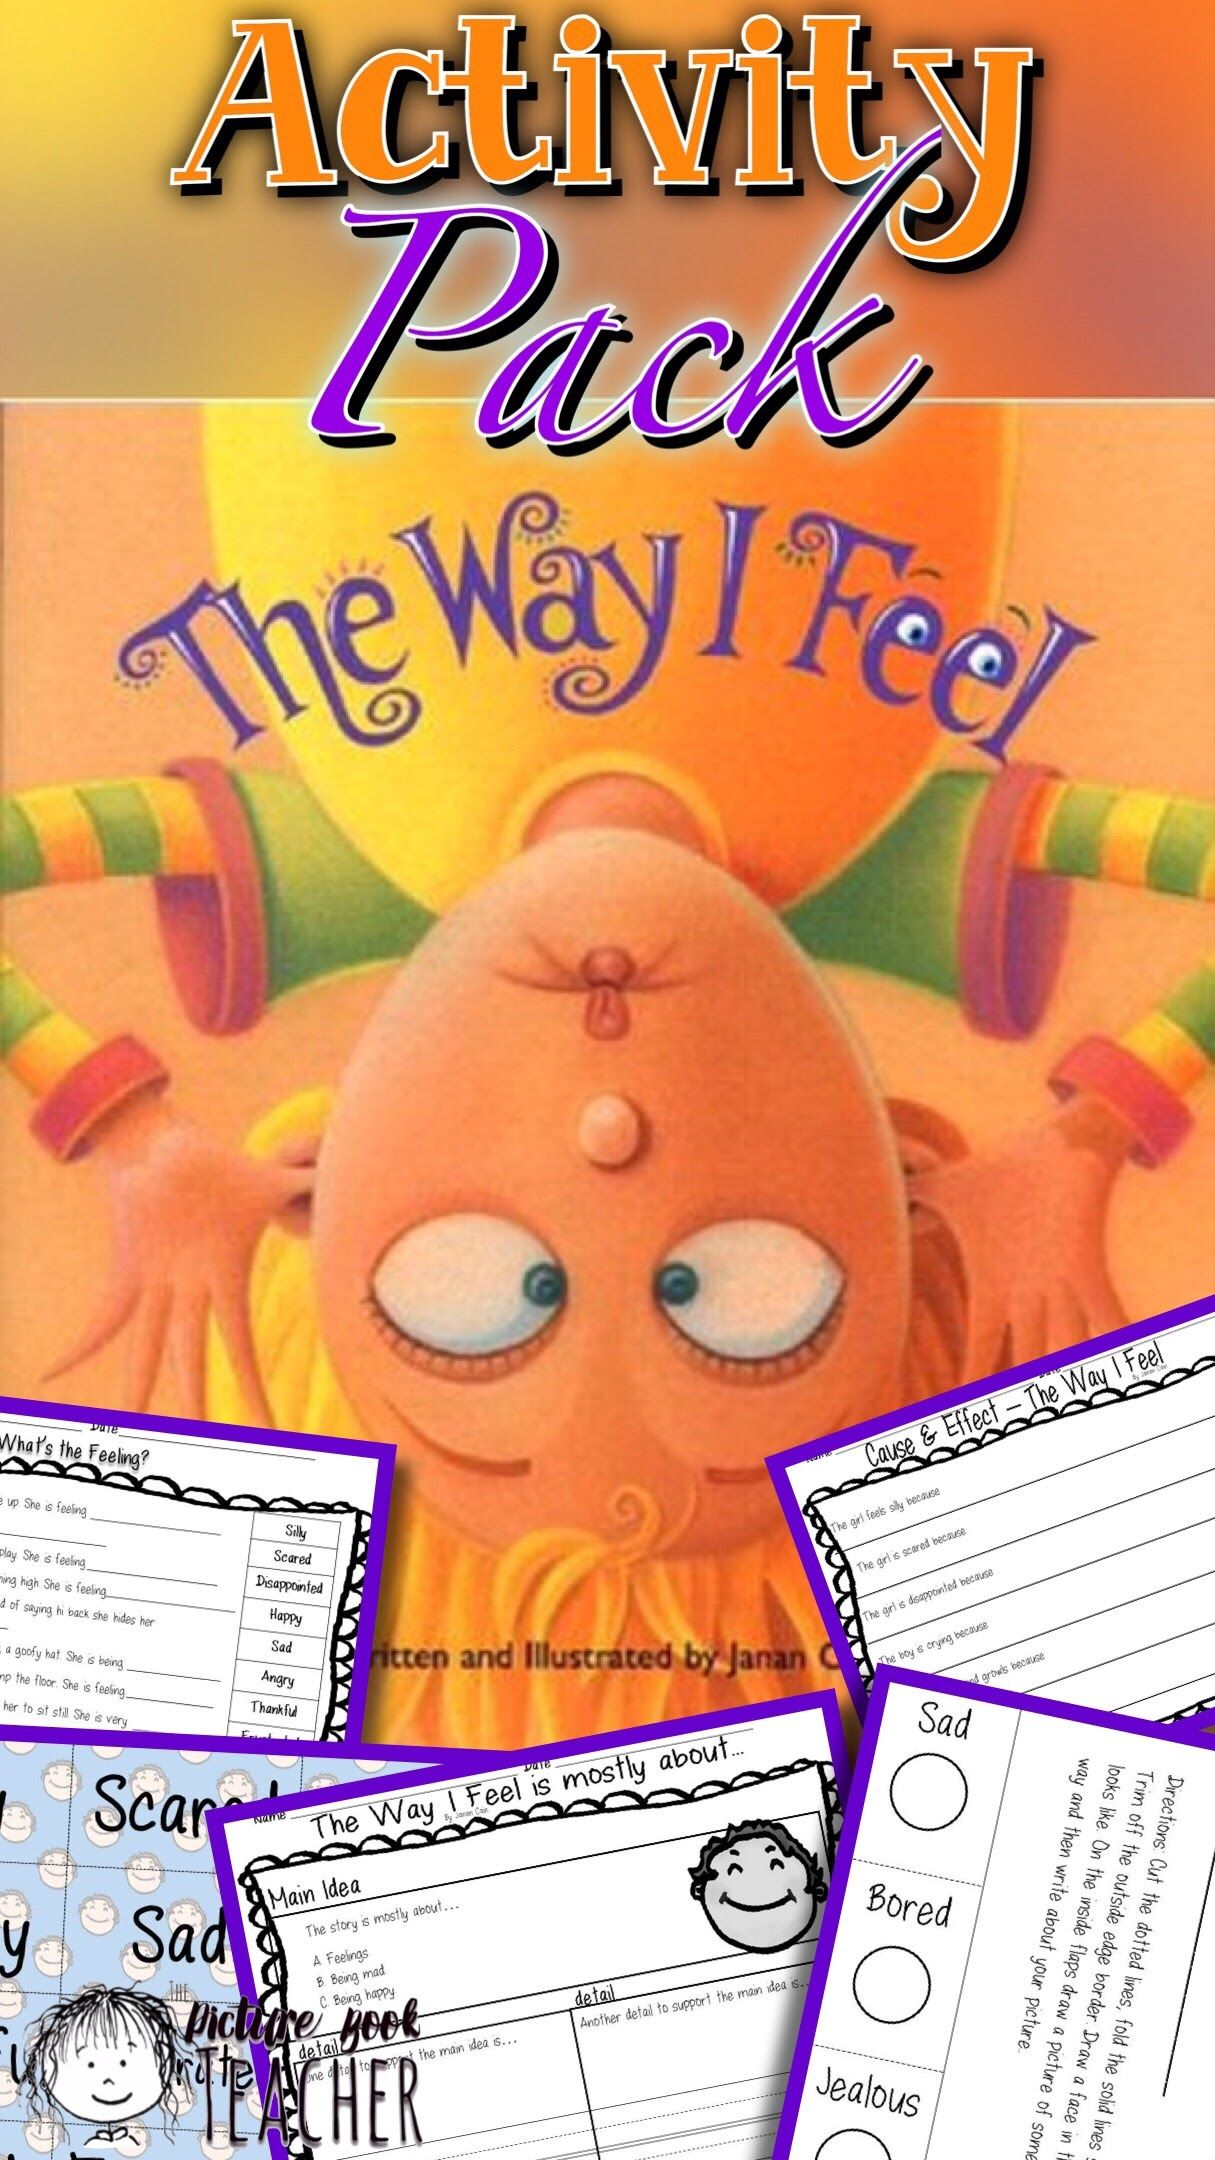 Recognizing Feelings Inspired By The Way I Feel By Janan